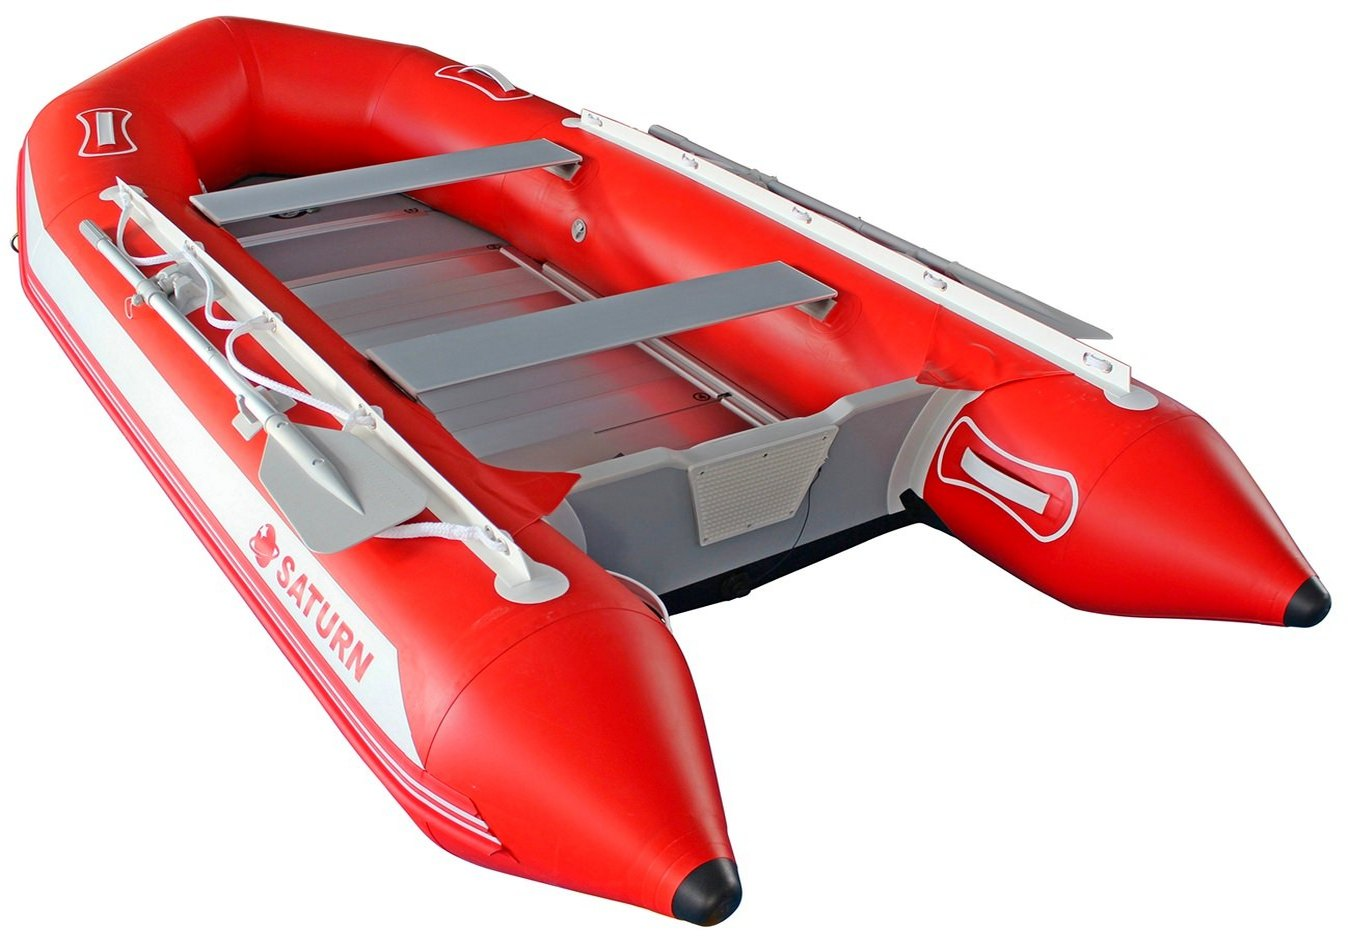 12.5' Budget Boat by Saturn - Red Top View